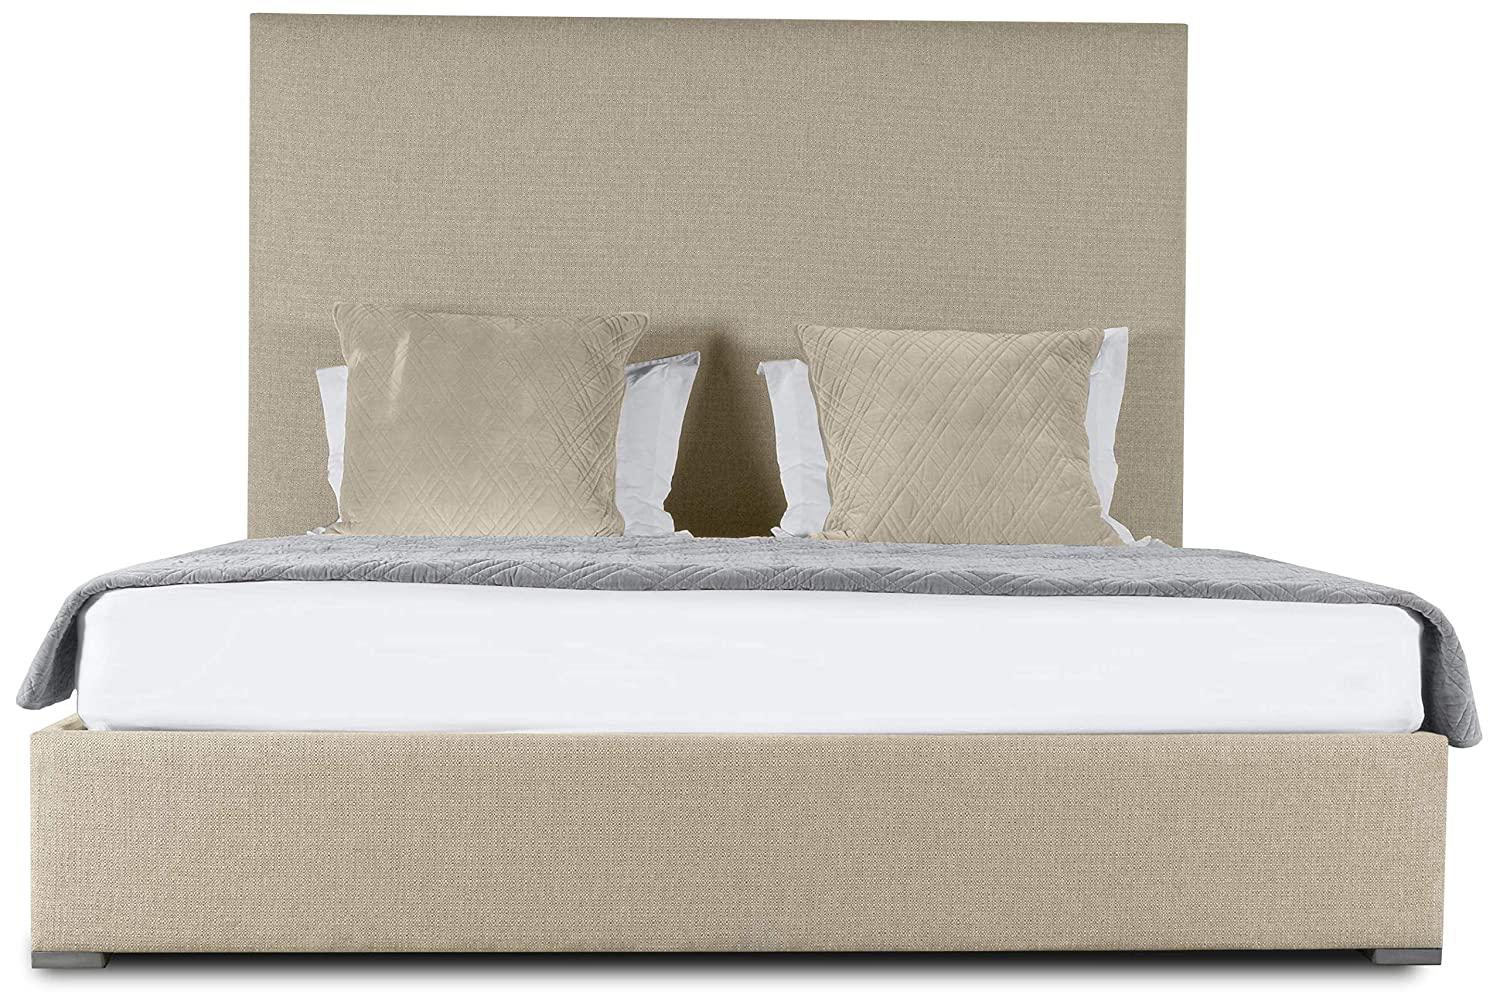 Amazon.com: South Cone Home AUDBEDPLMIDQN/WHT Audrey Plain Upholstery Bed, Queen, White: Kitchen & Dining